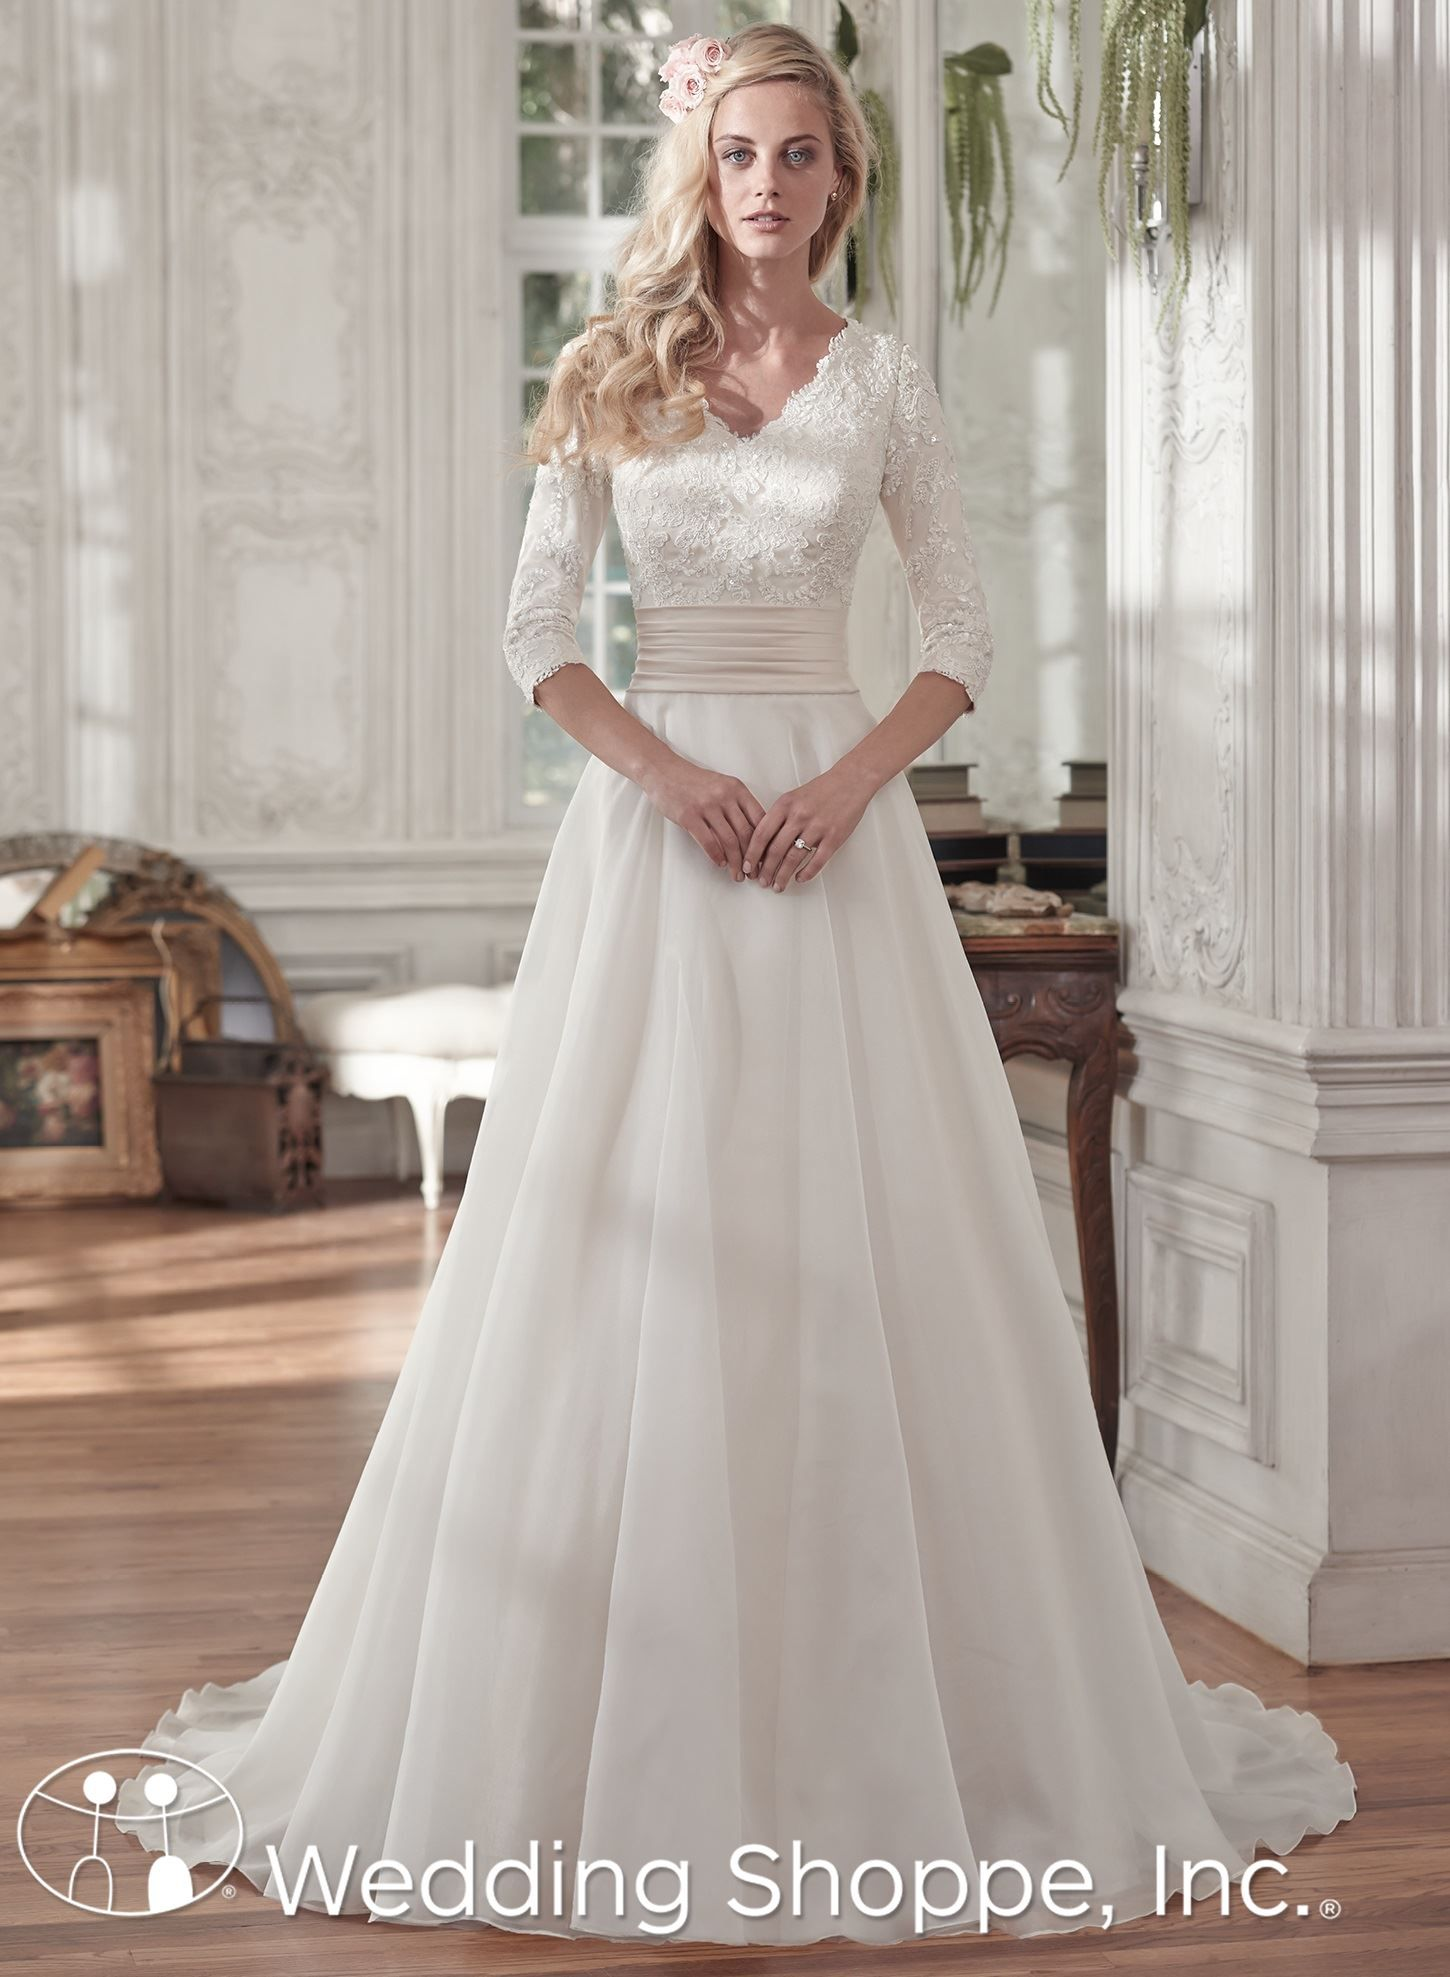 3 4 sleeve lace wedding dress  Maggie Sottero Bridal Gown Brentleigh  MS  Our Wedding